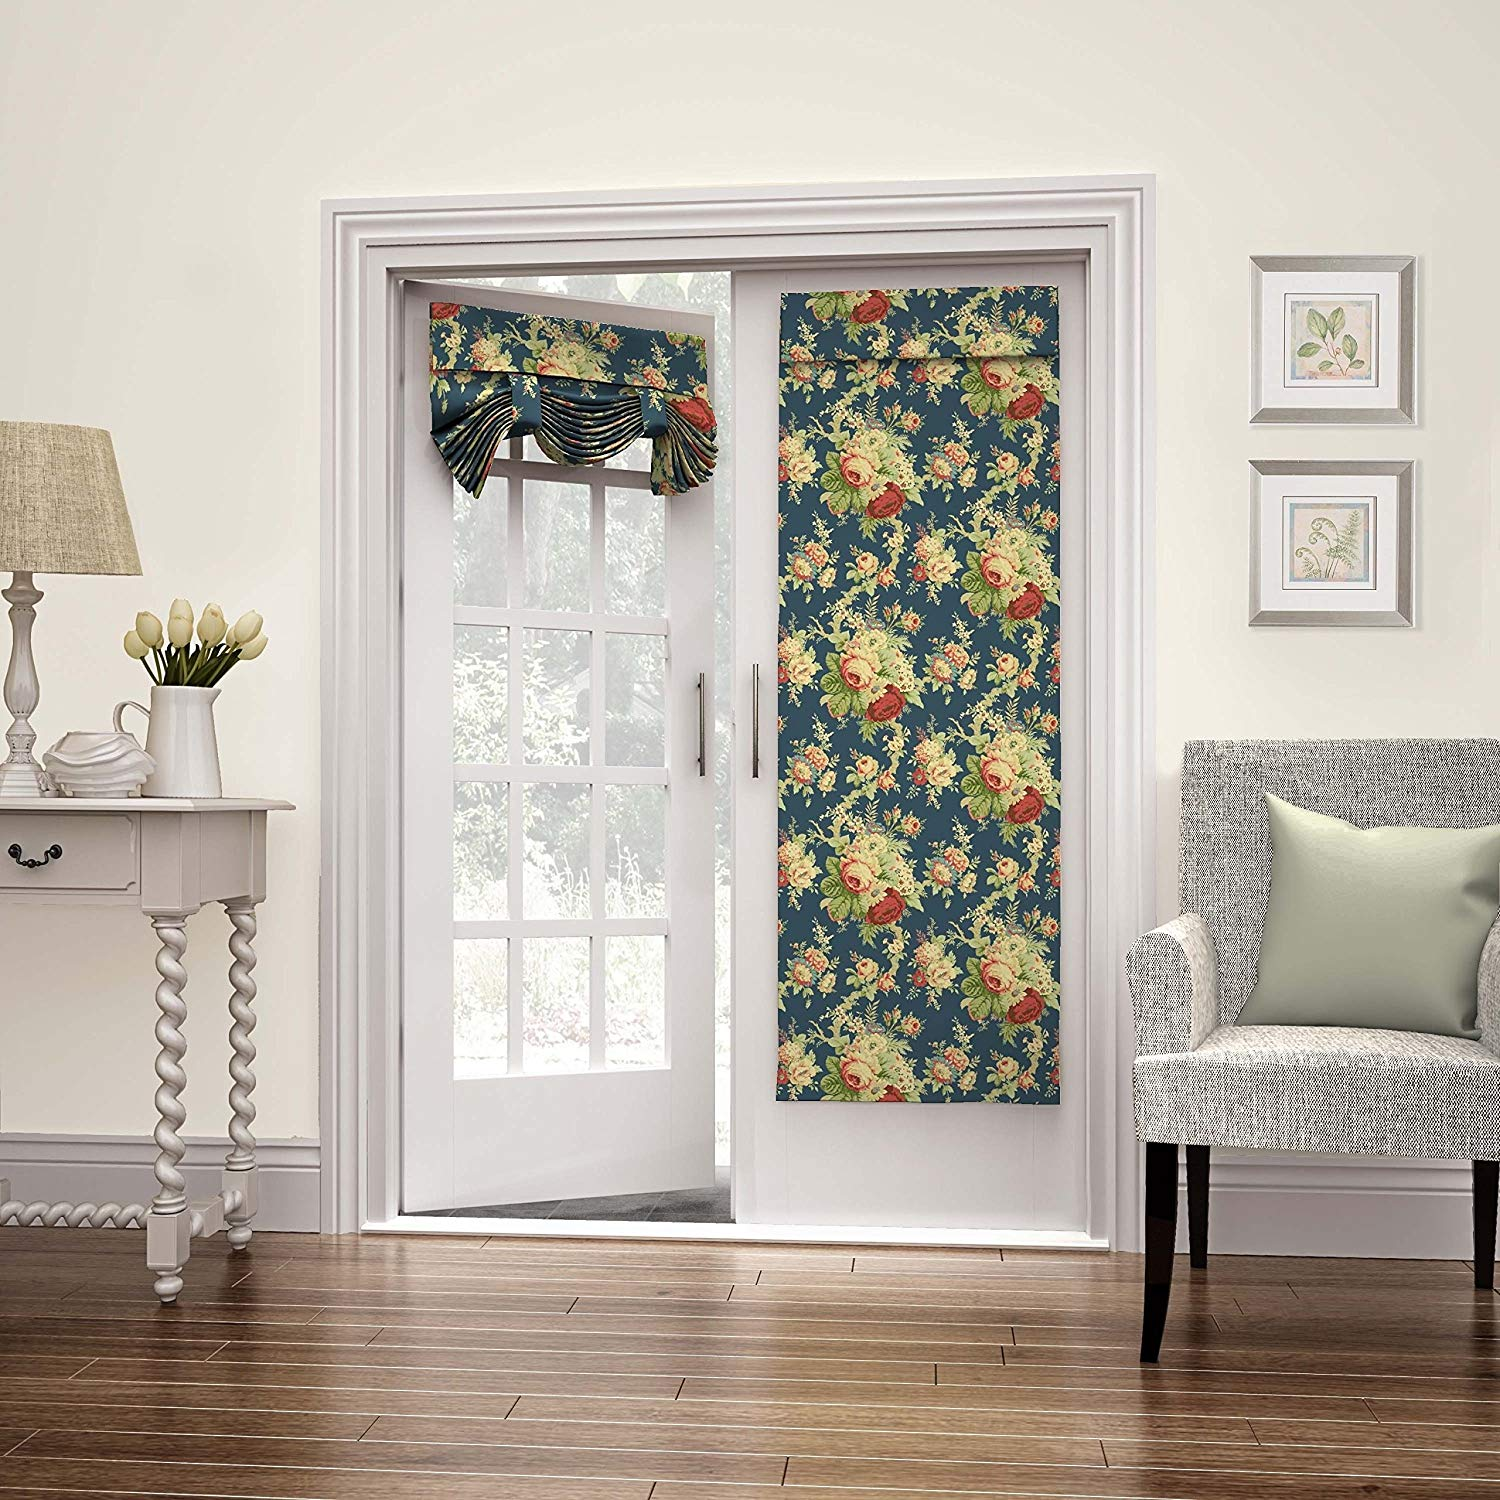 Cheap Stylish Curtains Cheap Patio Door Curtains Find Patio Door Curtains Deals On Line